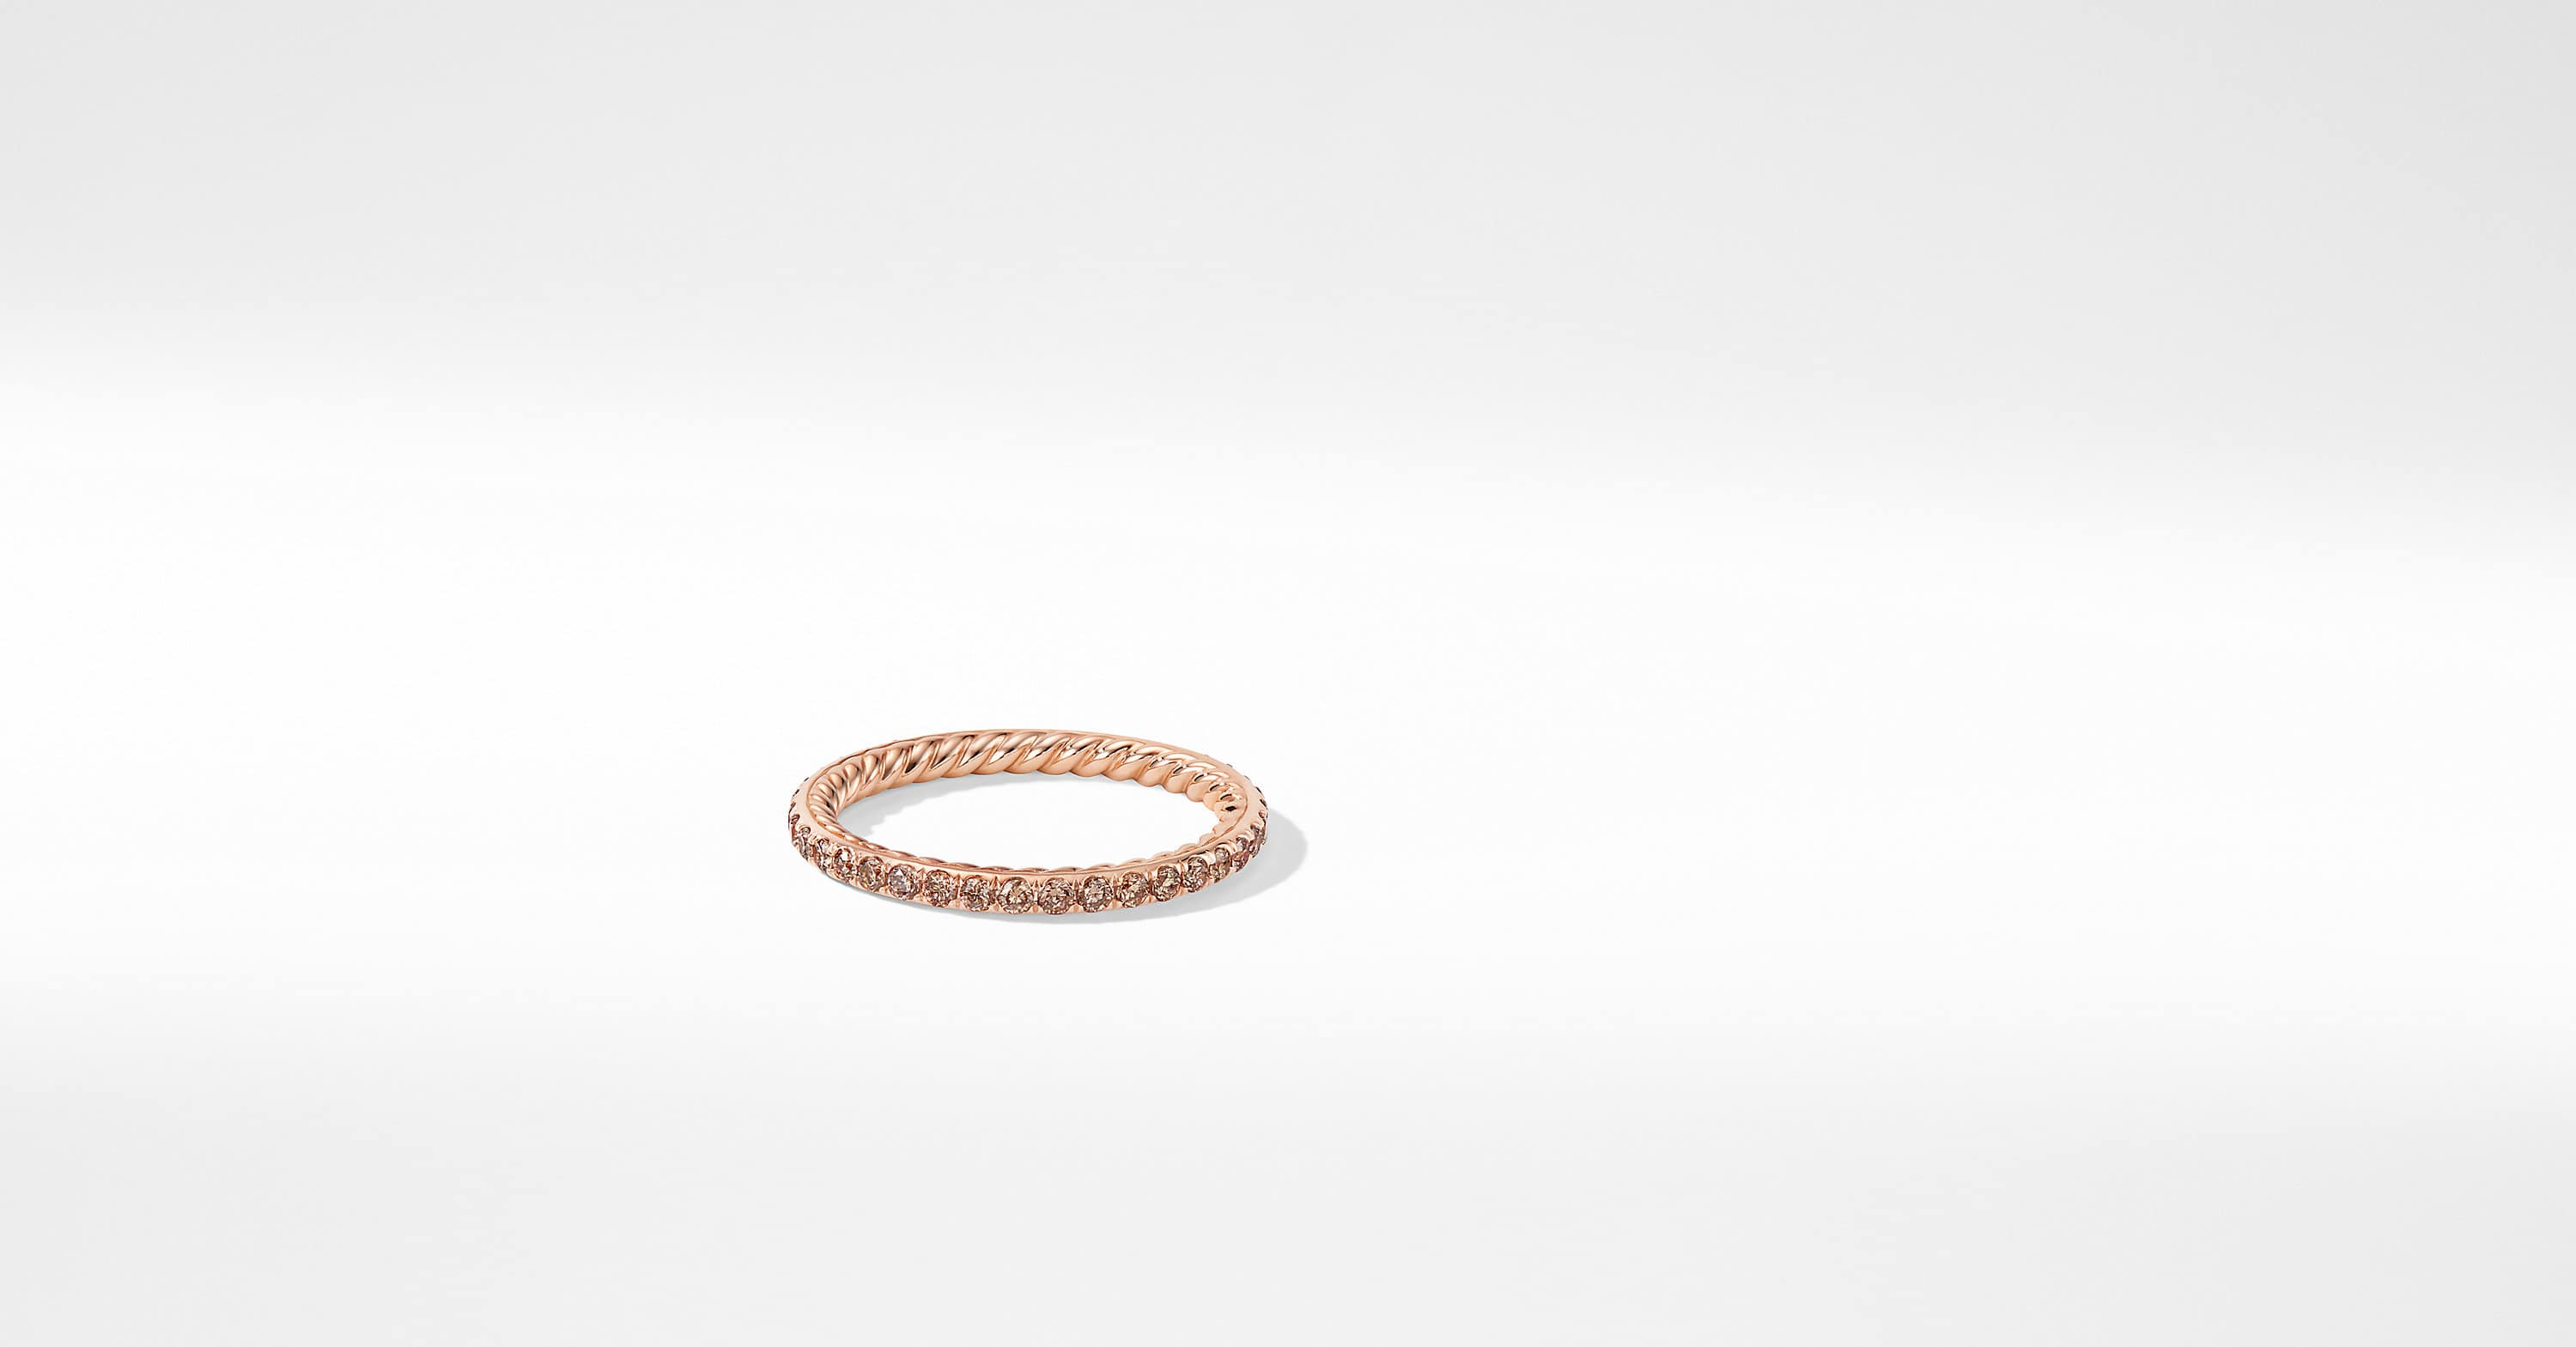 DY Eden Single Row Wedding Band with Diamonds in 18K Rose Gold, 1.85mm